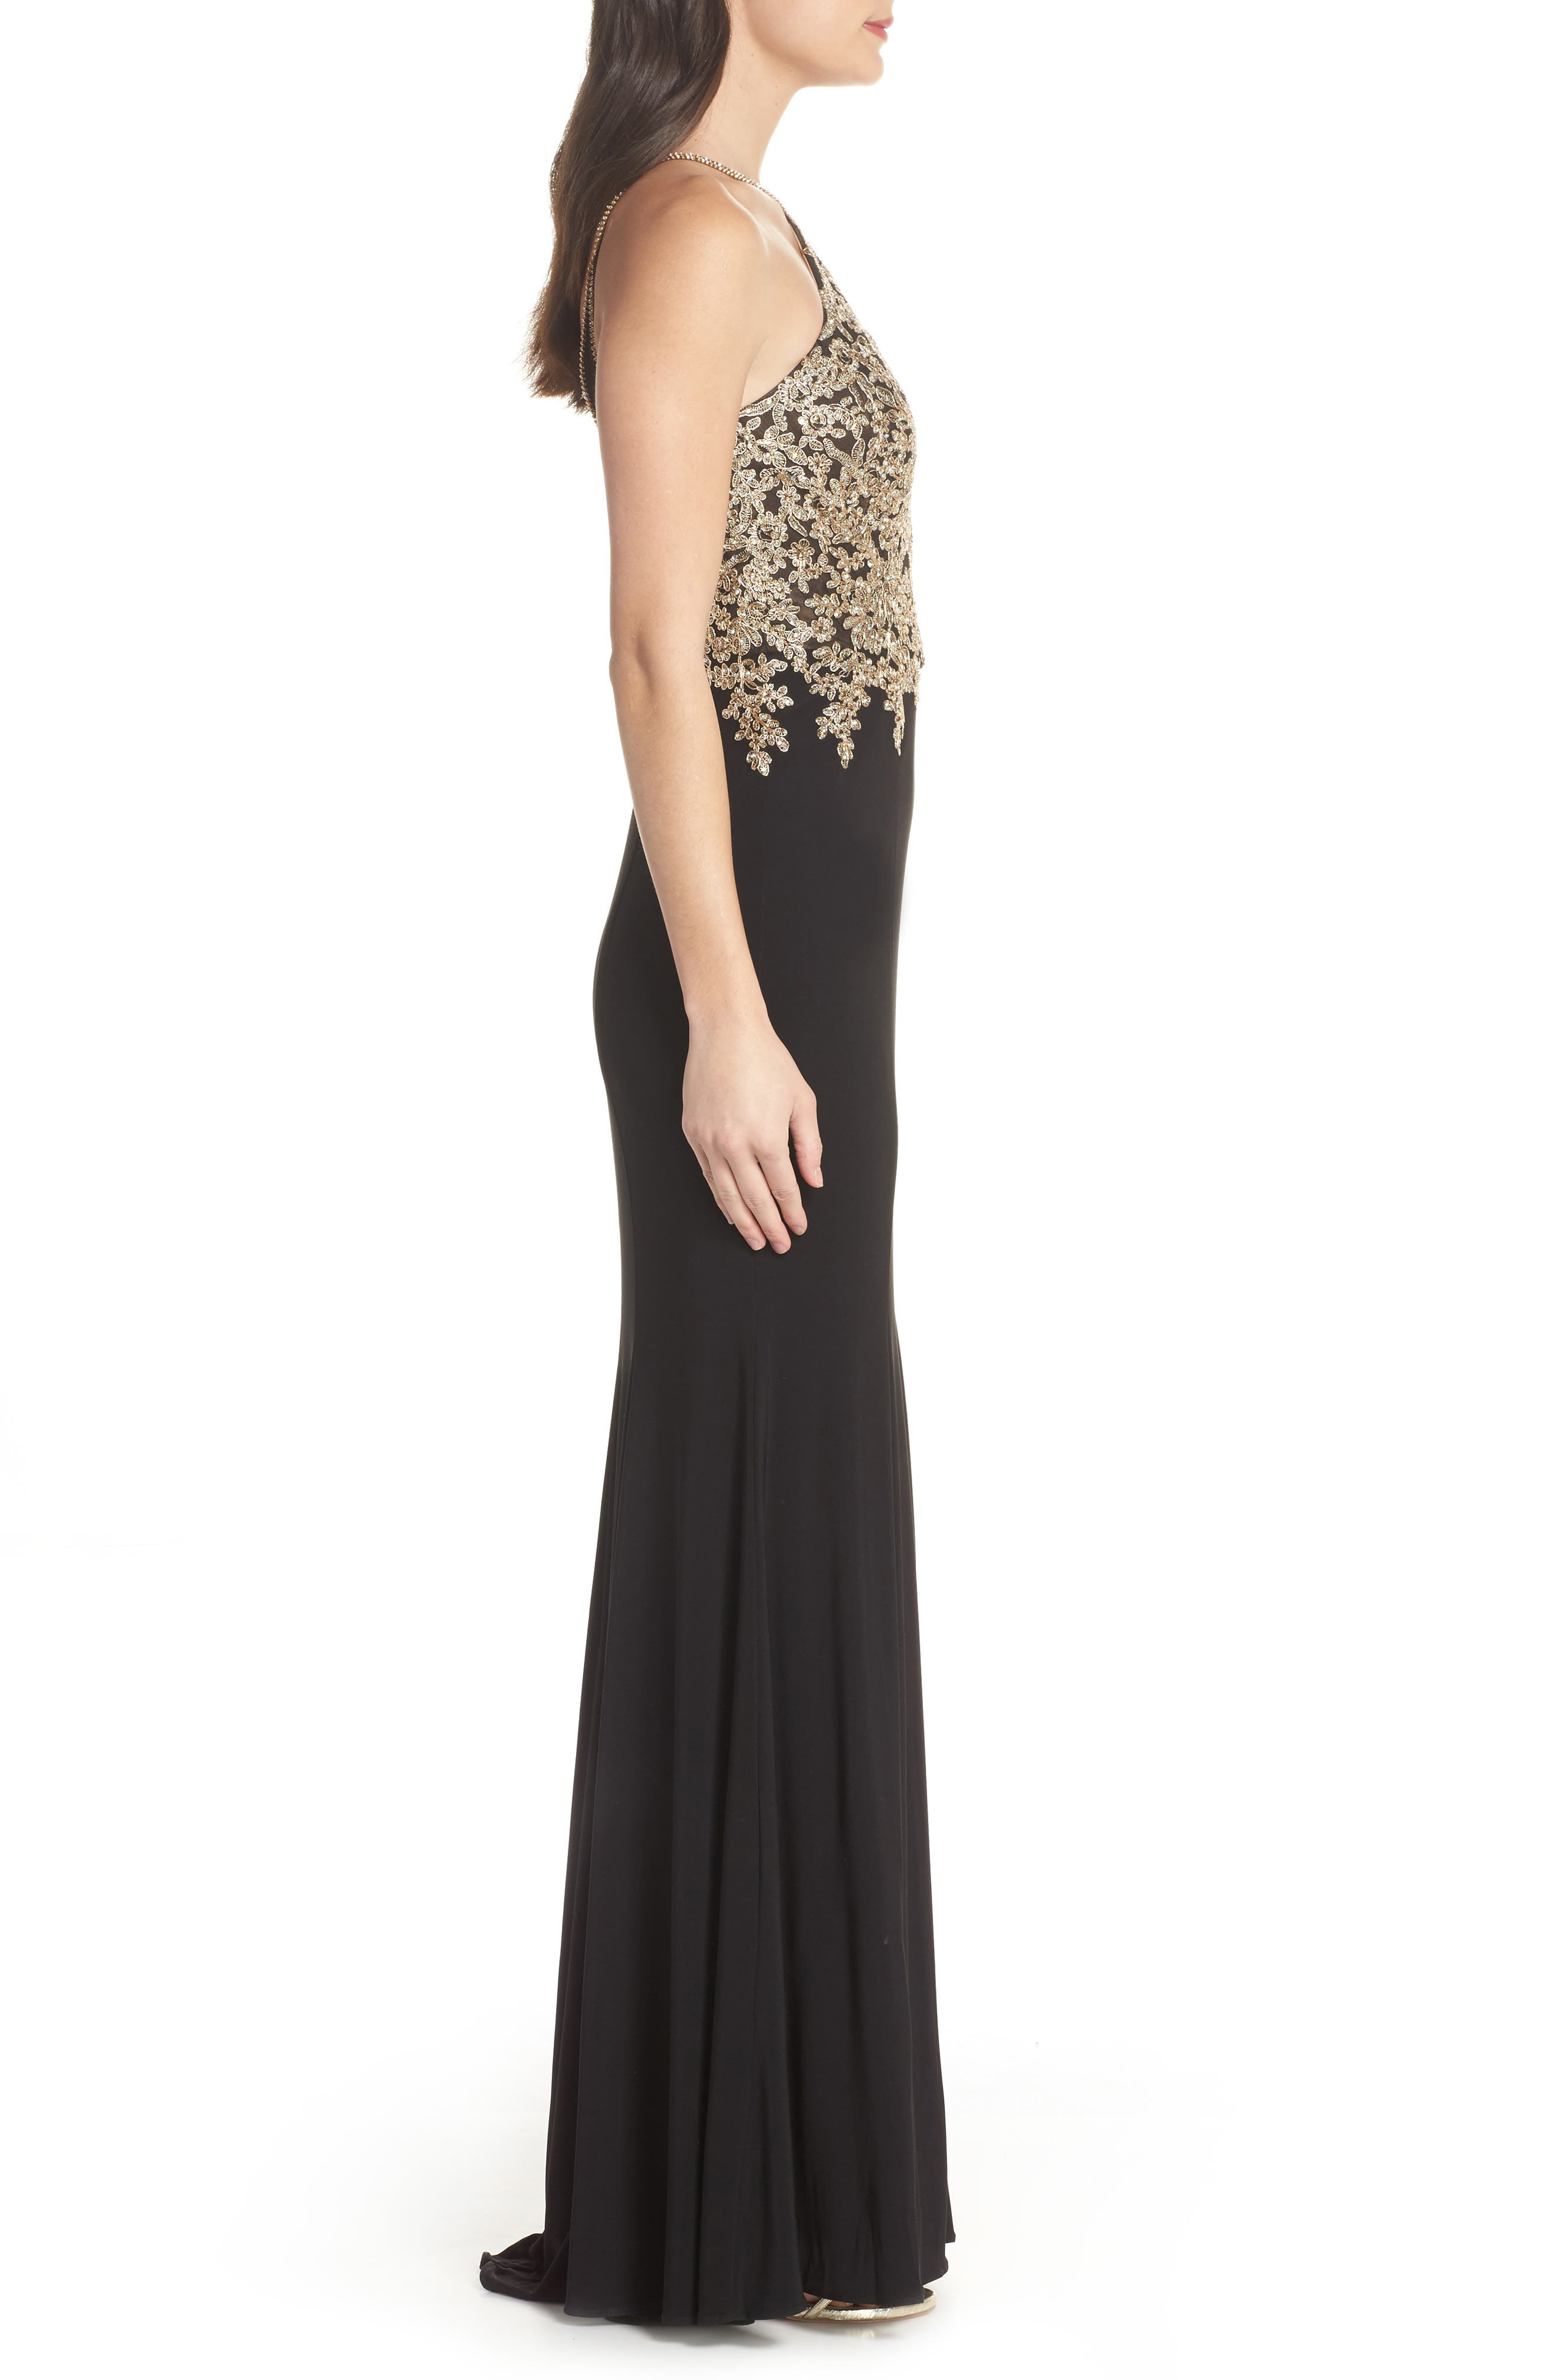 XSCAPE,                             Gold Embroidery Halter Neck Gown,                             Alternate thumbnail 3, color,                             001